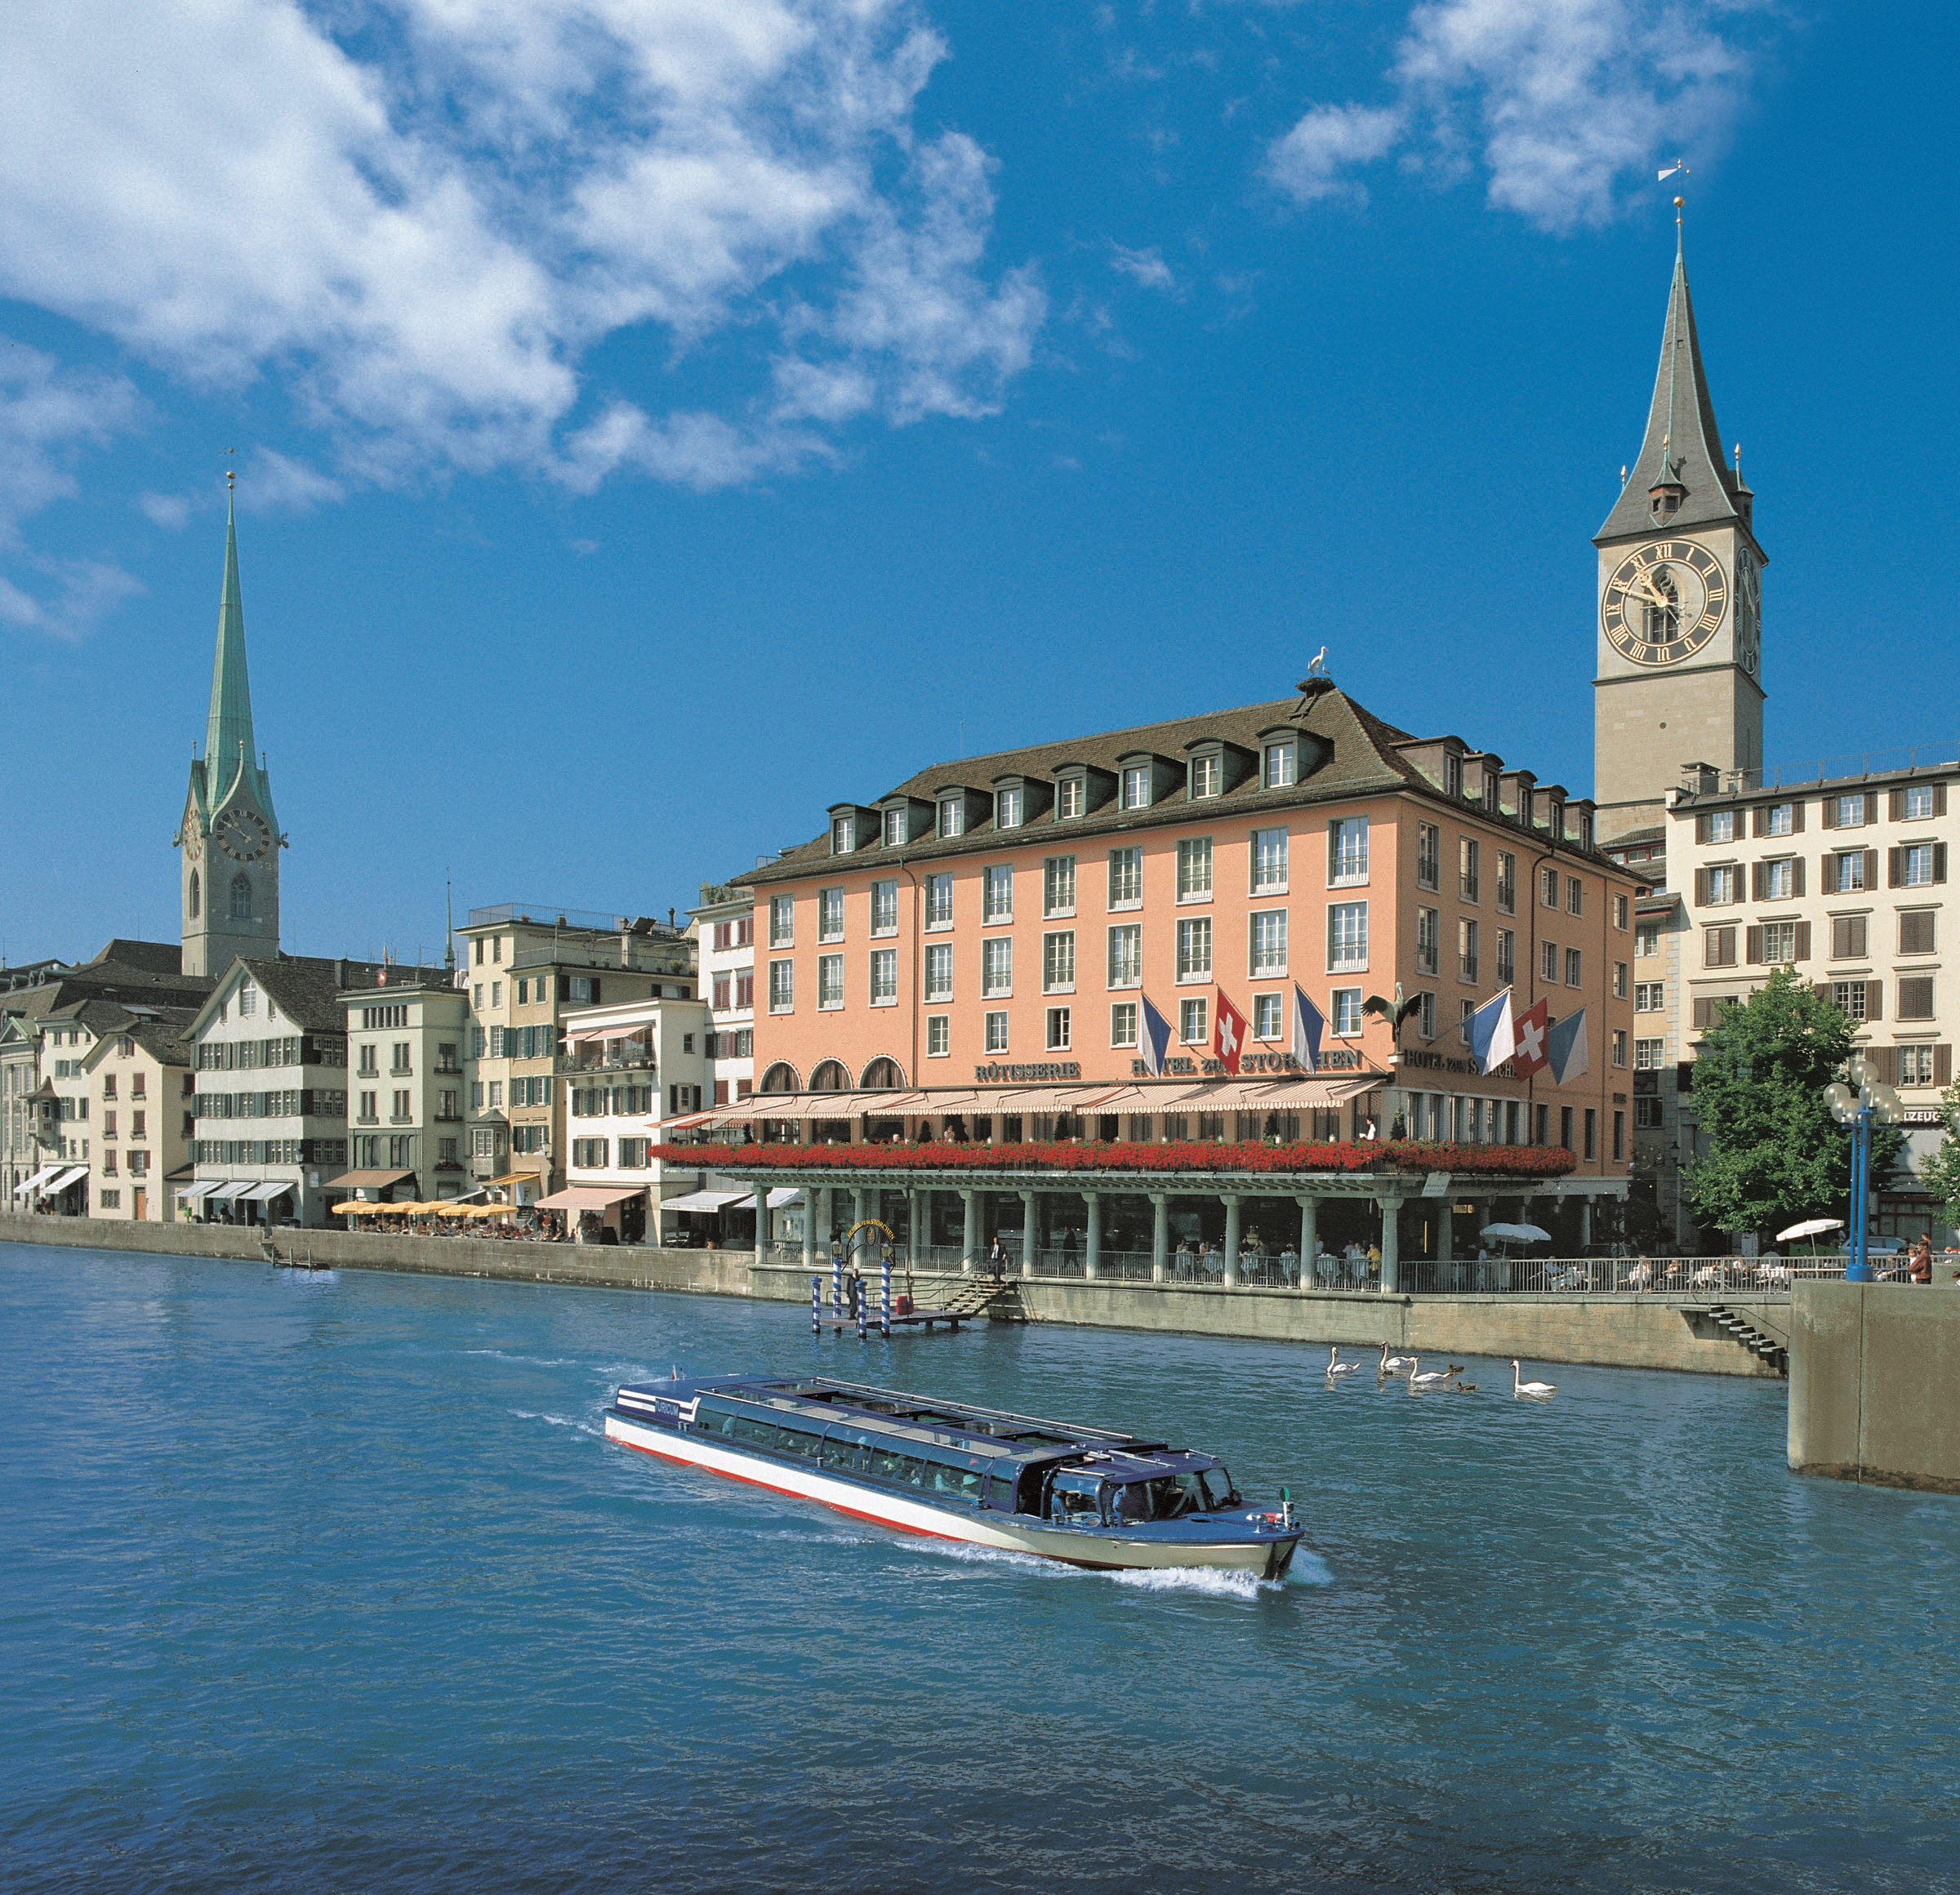 The Storchen on the Limmat River